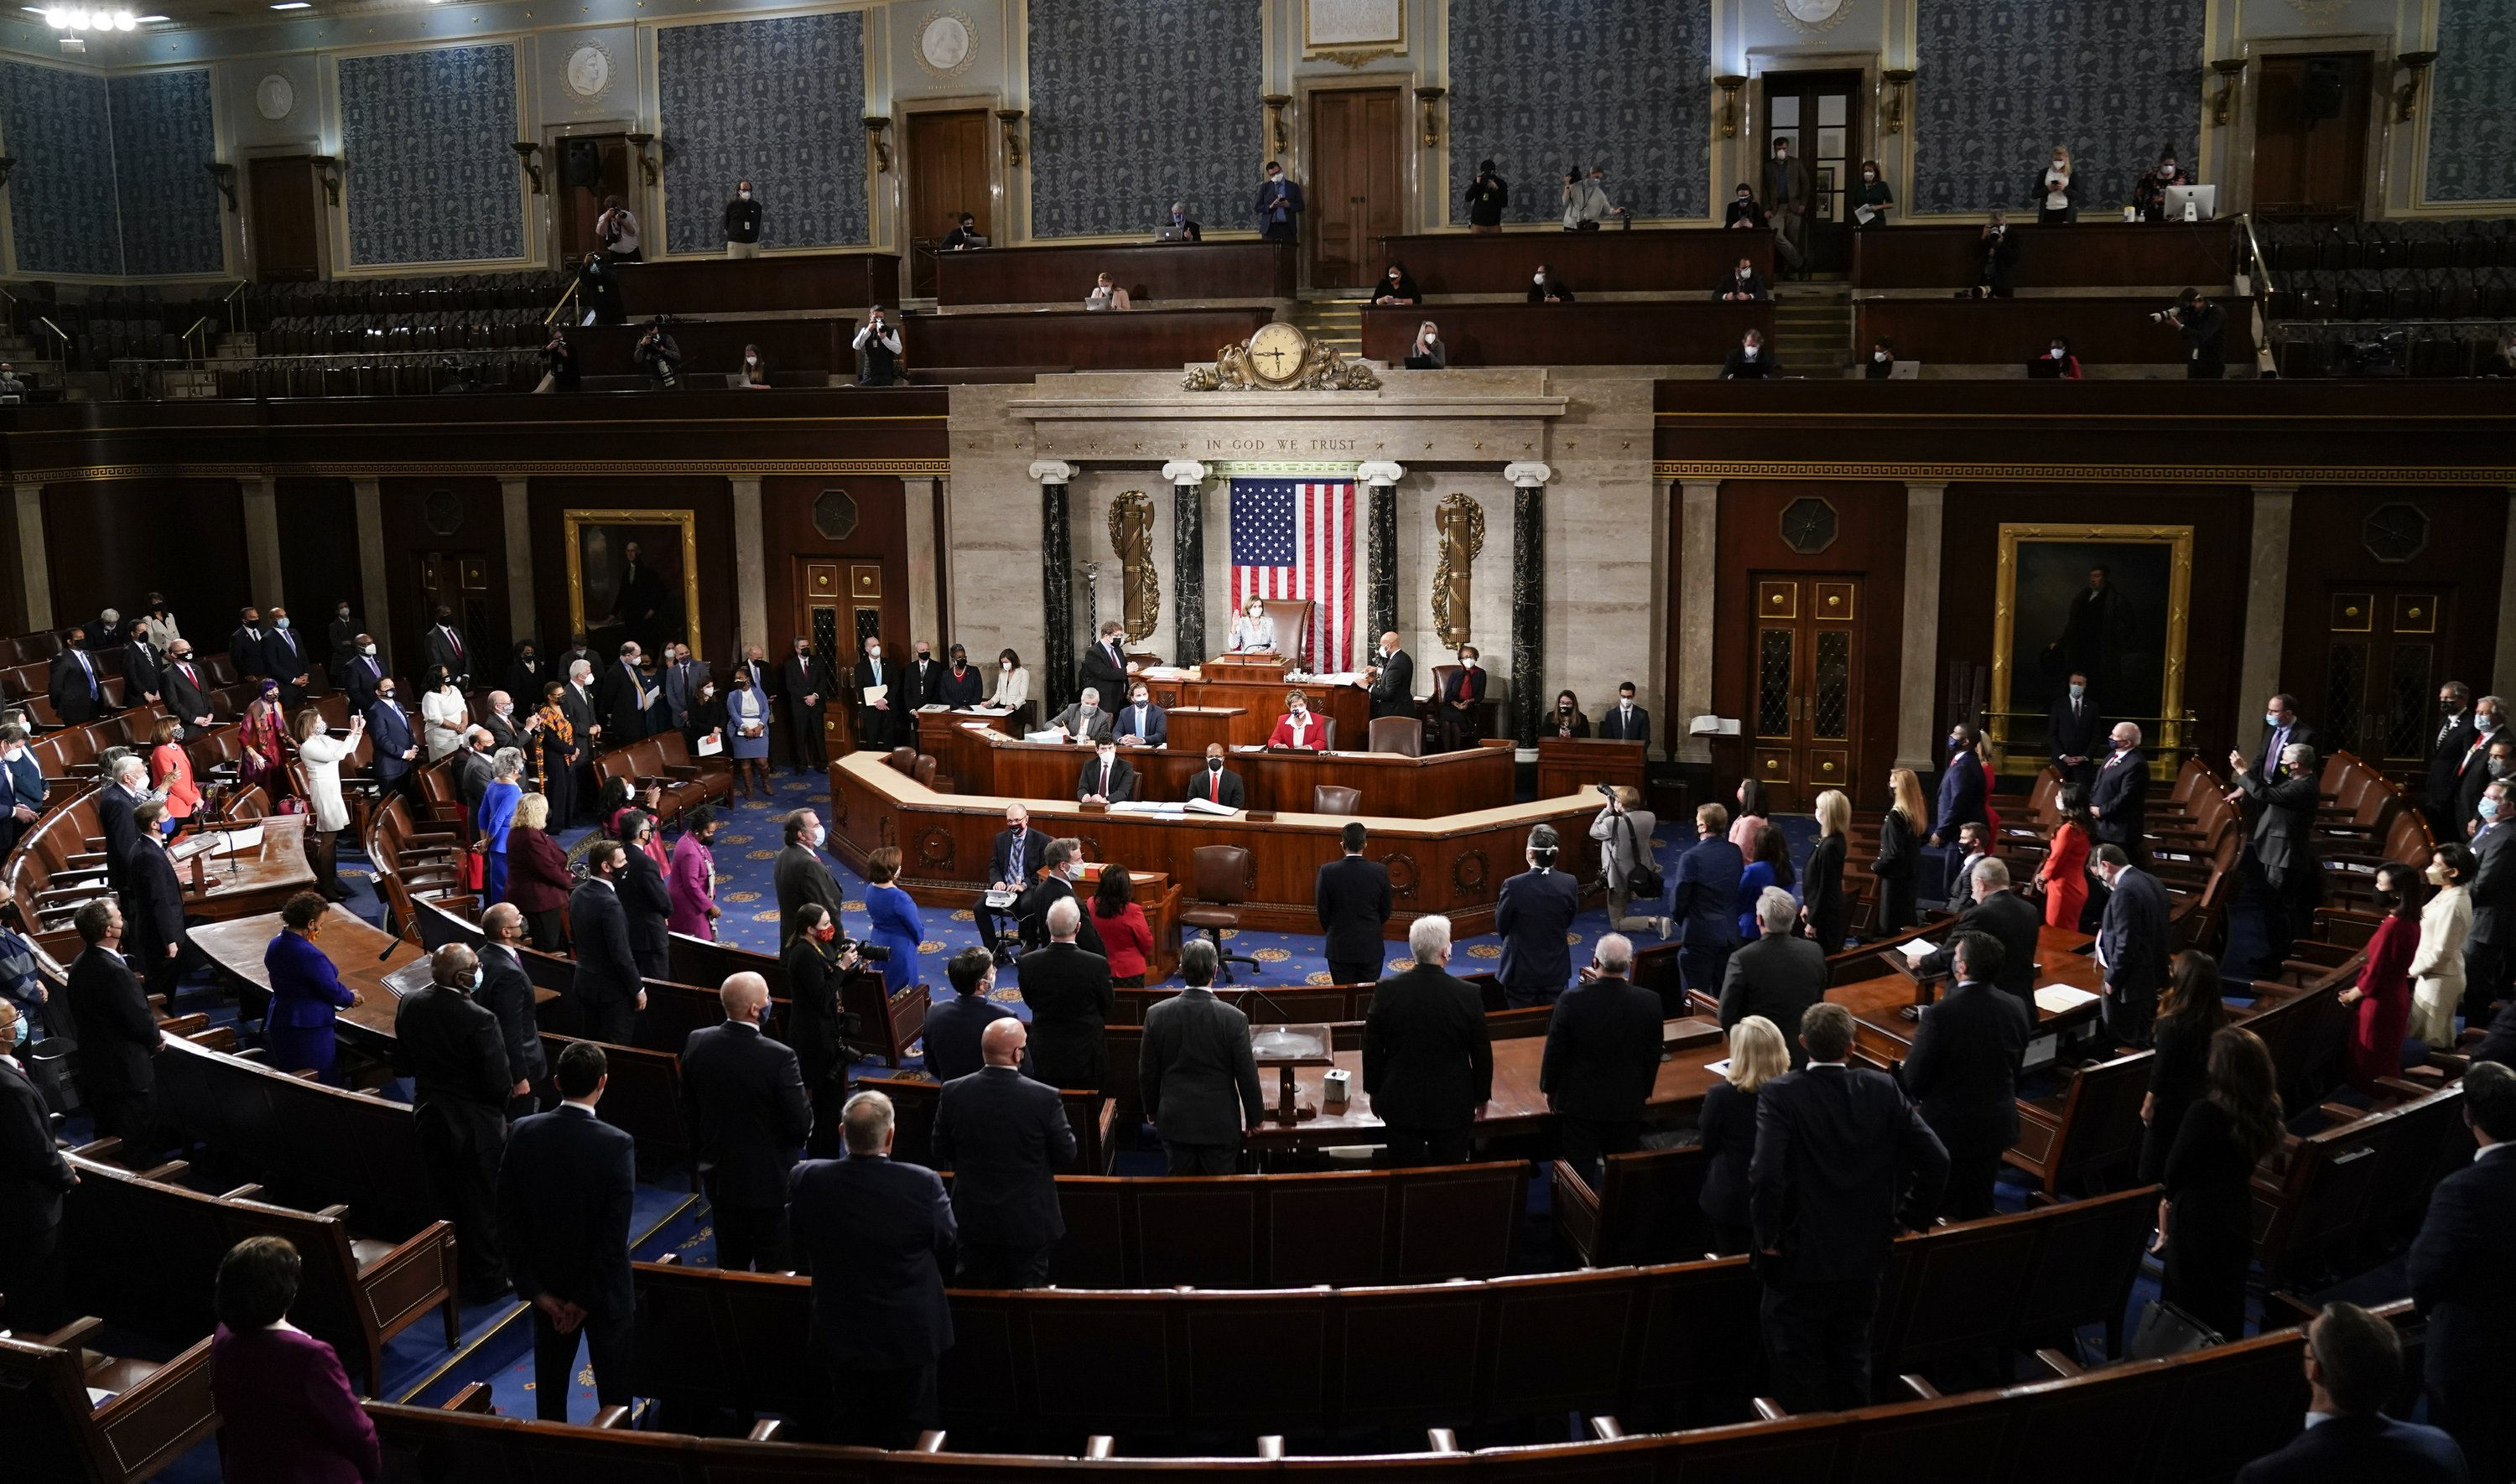 Congress opens new session as virus, Biden's win dominate